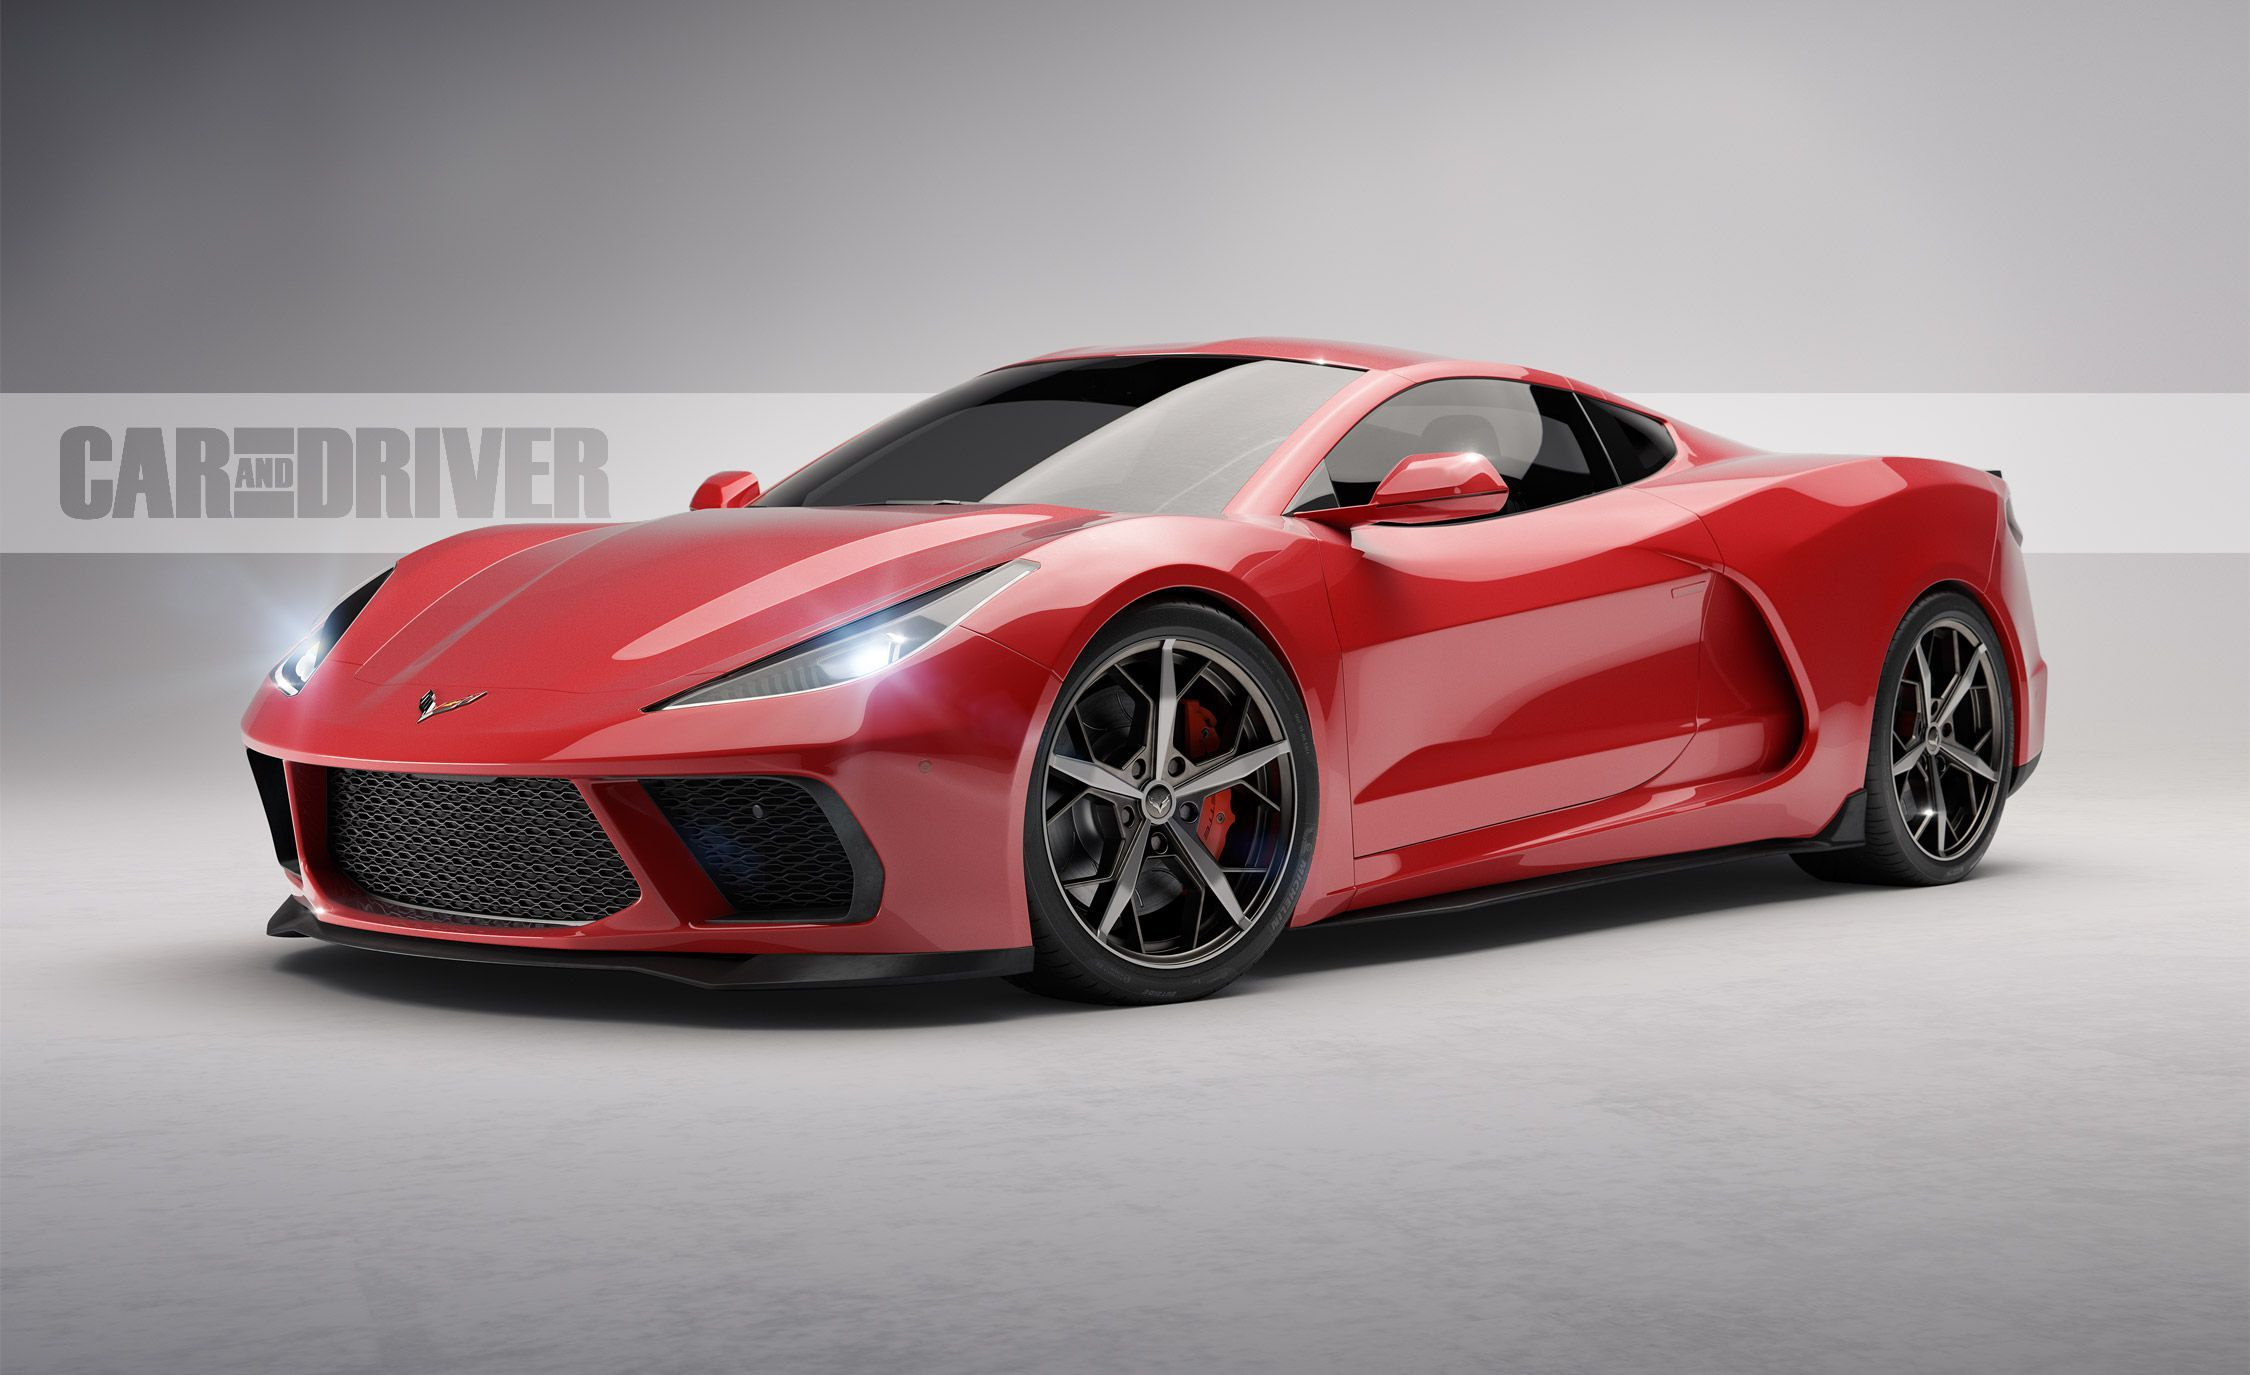 2020 Chevrolet Corvette C8 The Mid Engined White Whale Is Nearly Chevyclutchlinkage Chevy Truck Clutch Linkage Diagram Car Pictures Here 25 Cars Worth Waiting For And Driver